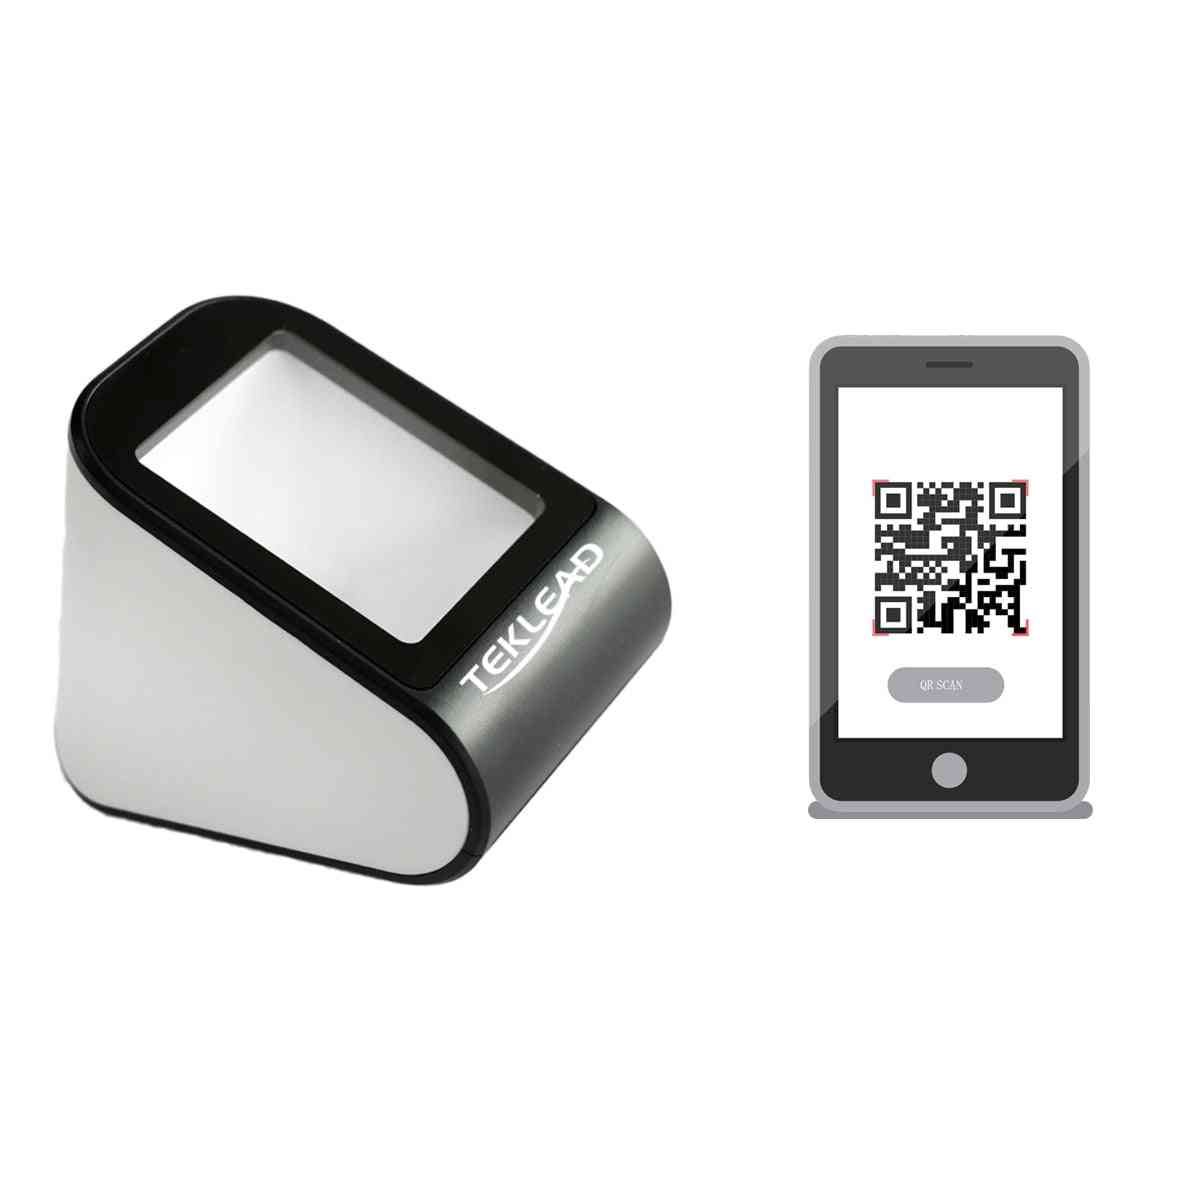 Qr Code Scanner For Mobile Phone E-ticket 1d/2d Barcode Reader Wired